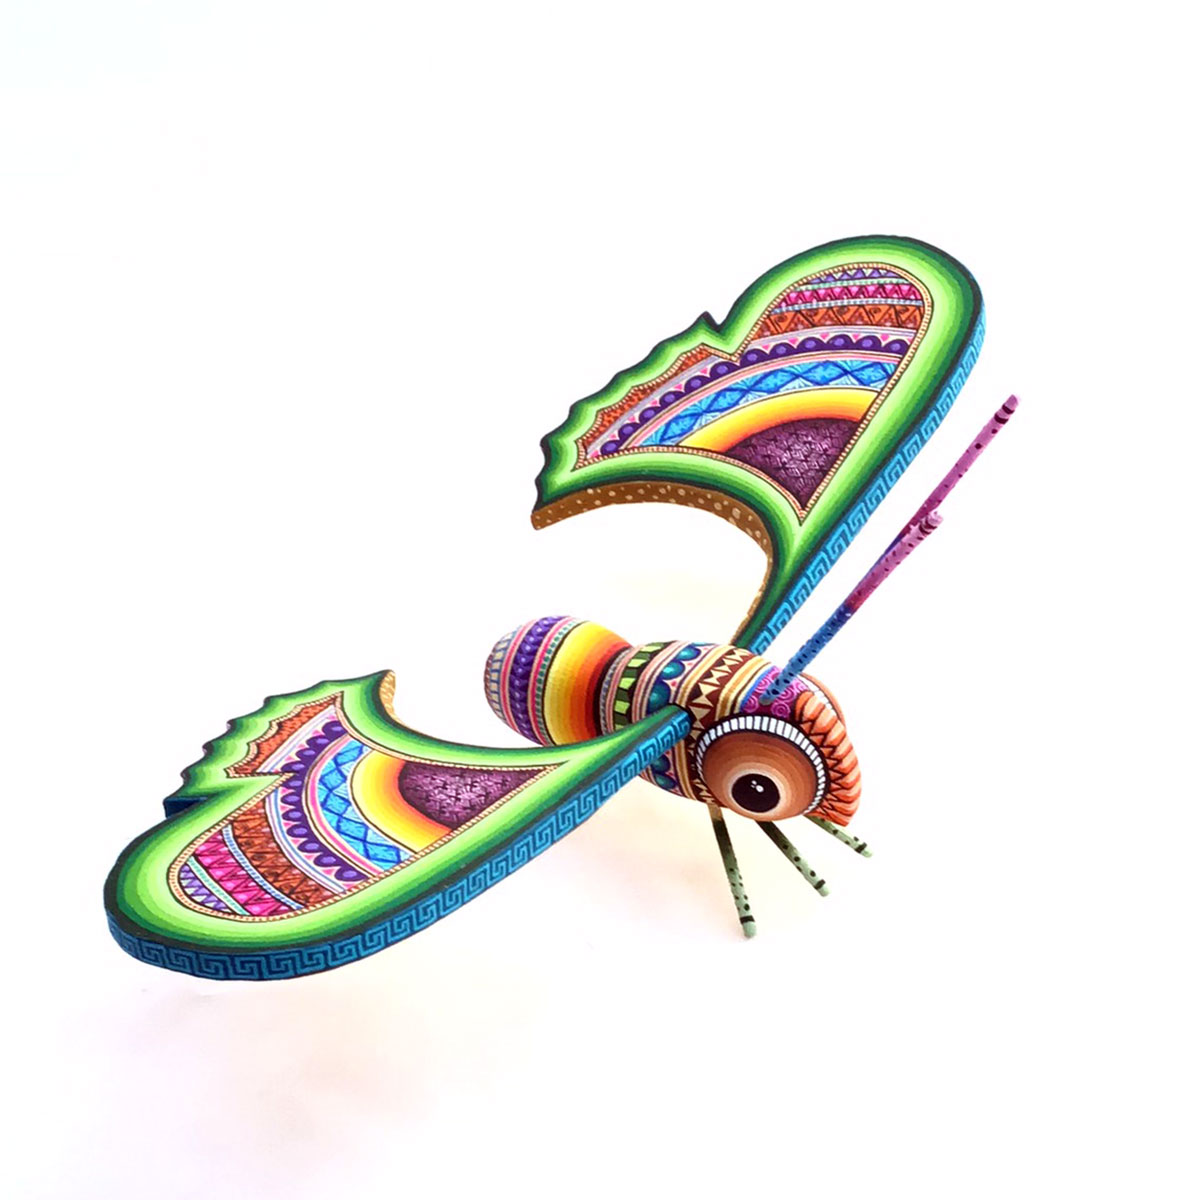 Magaly Fuentes & Jose Calvo Magaly Fuentes & Jose Calvo: Colorful Butterfly butterflies